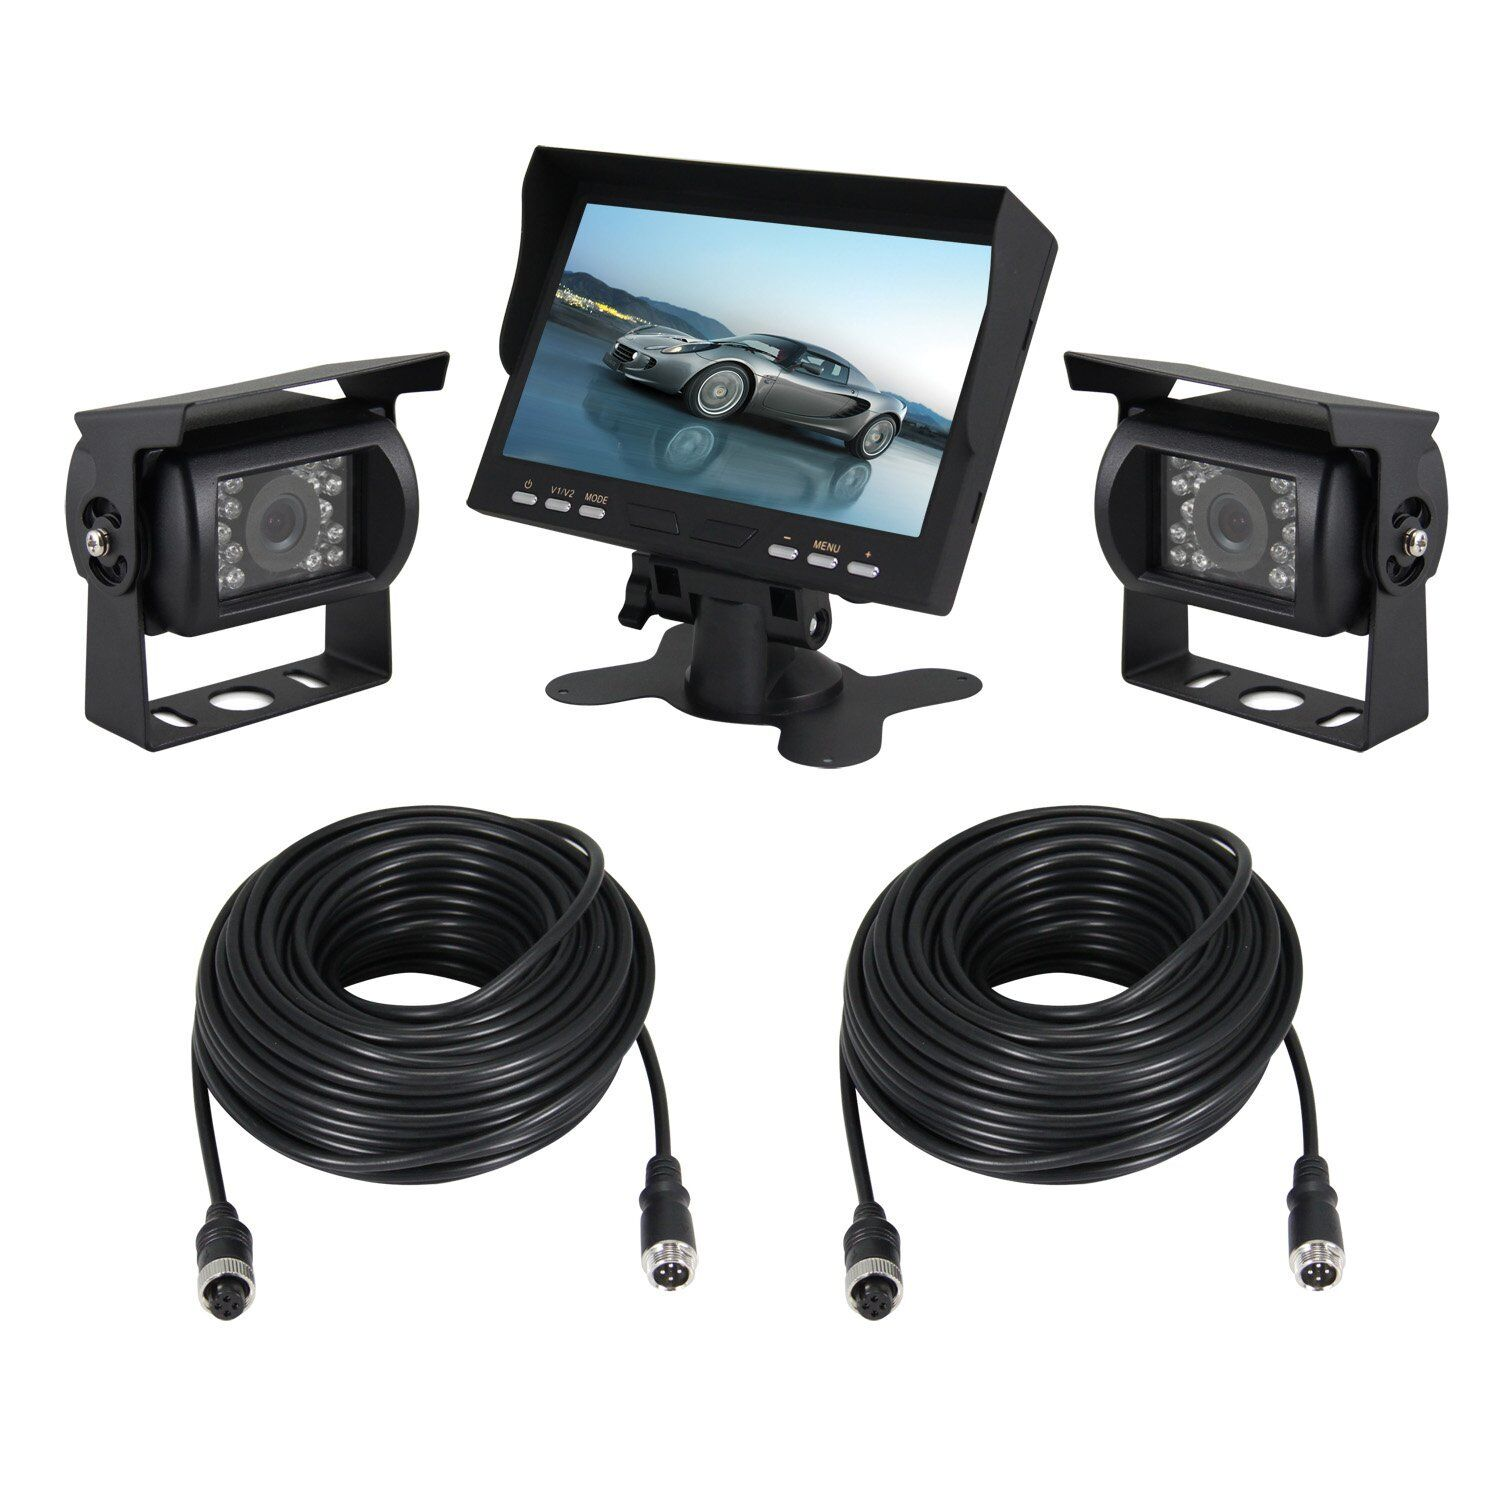 esky 7 tft monitor waterproof car rear view night vision backup 2 camera system ebay. Black Bedroom Furniture Sets. Home Design Ideas